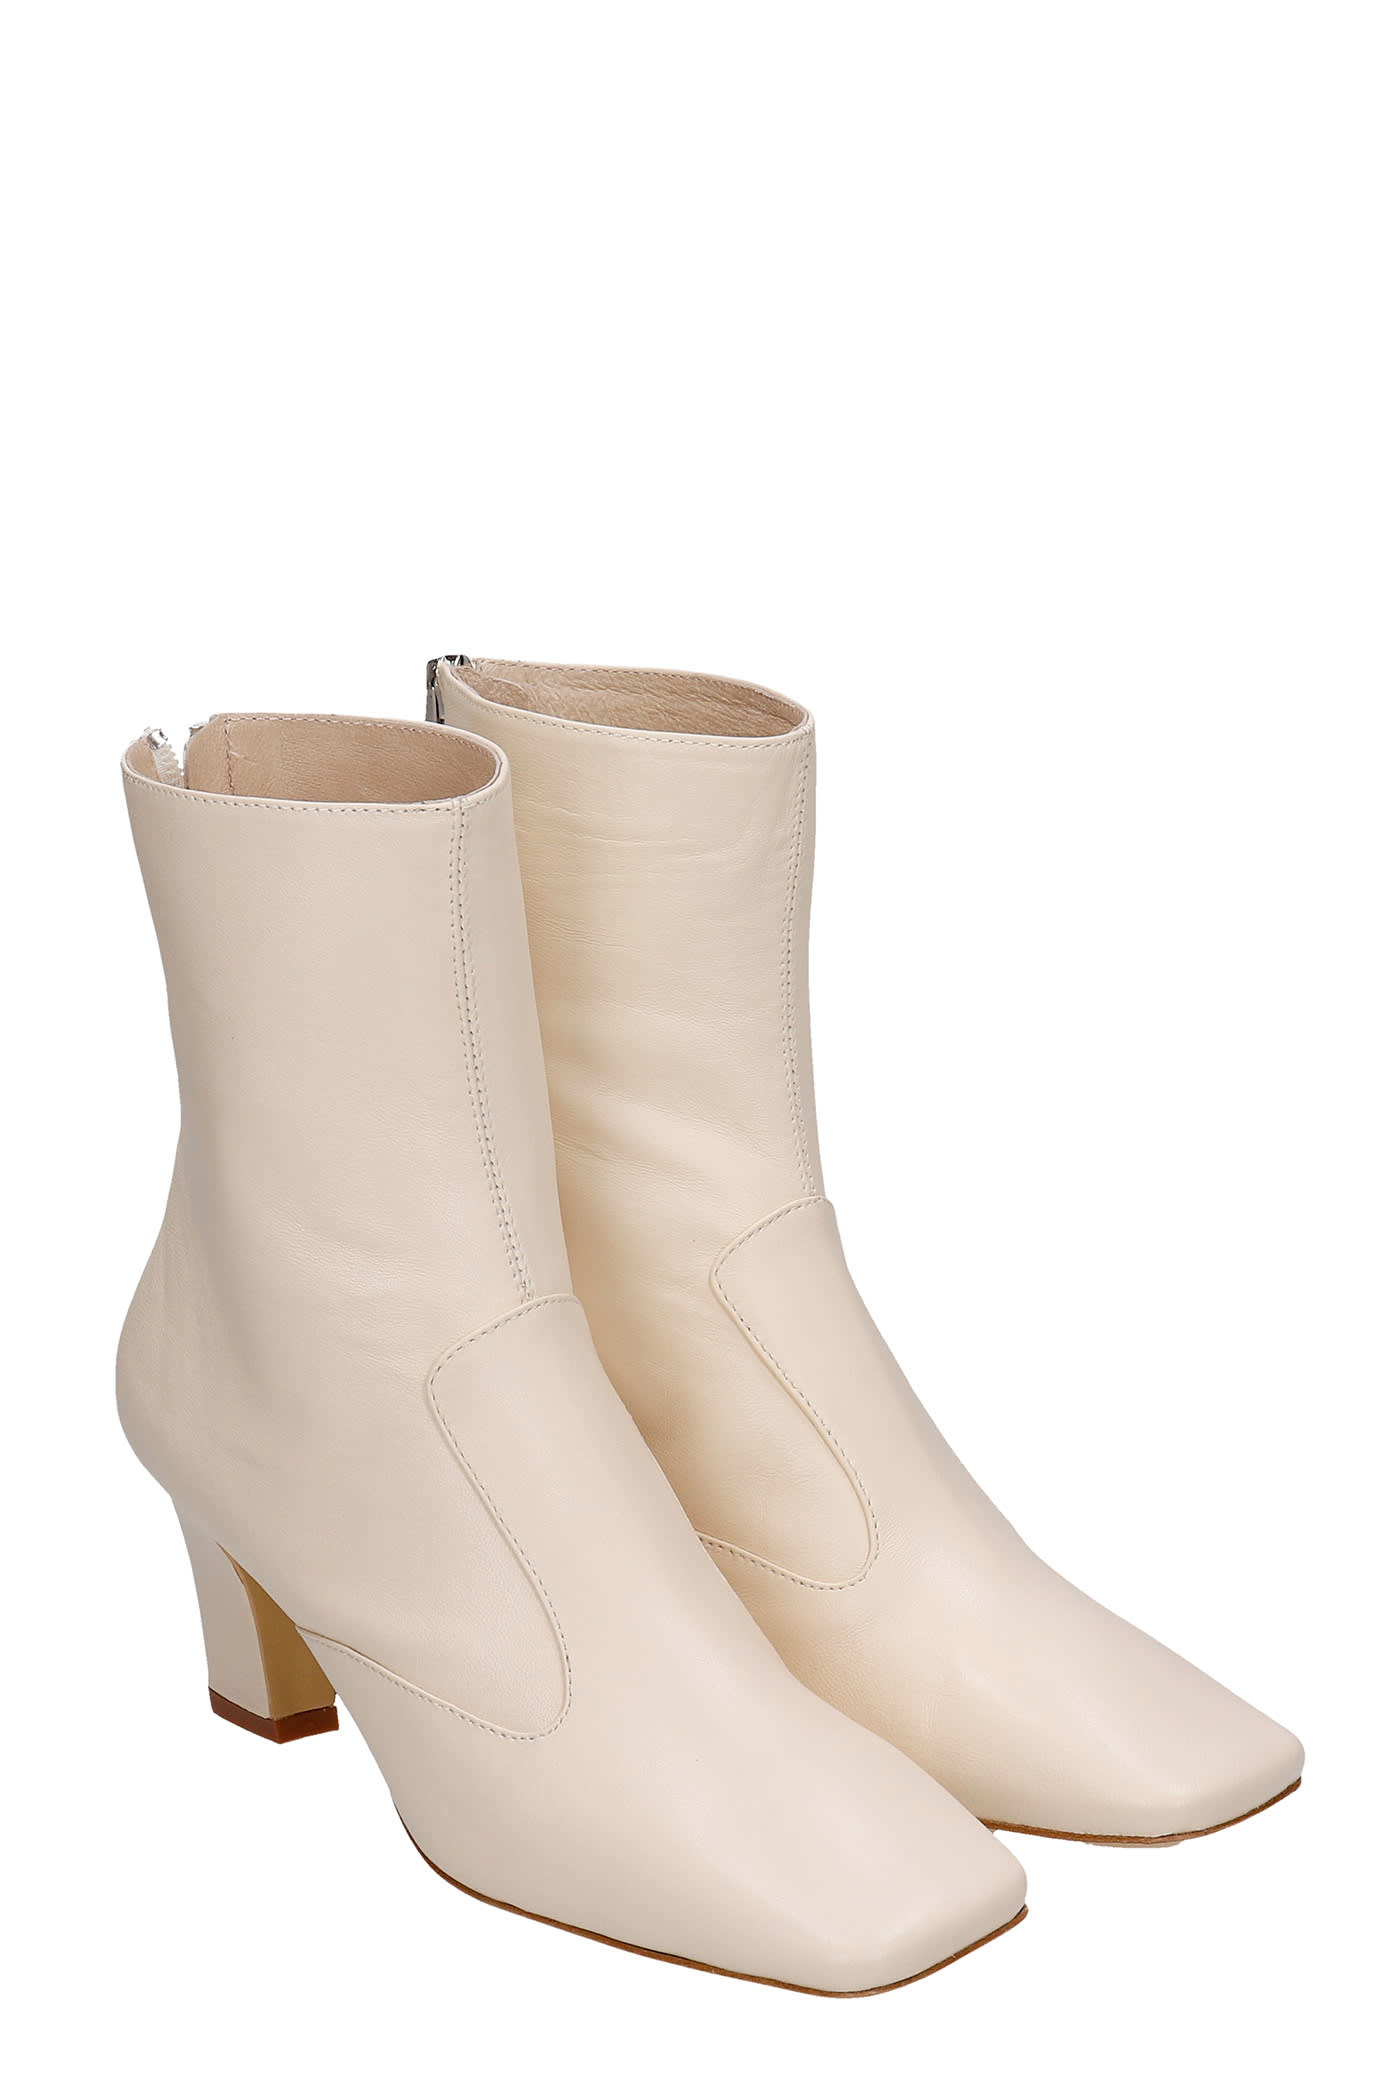 High Heels Ankle Boots In Beige Leather